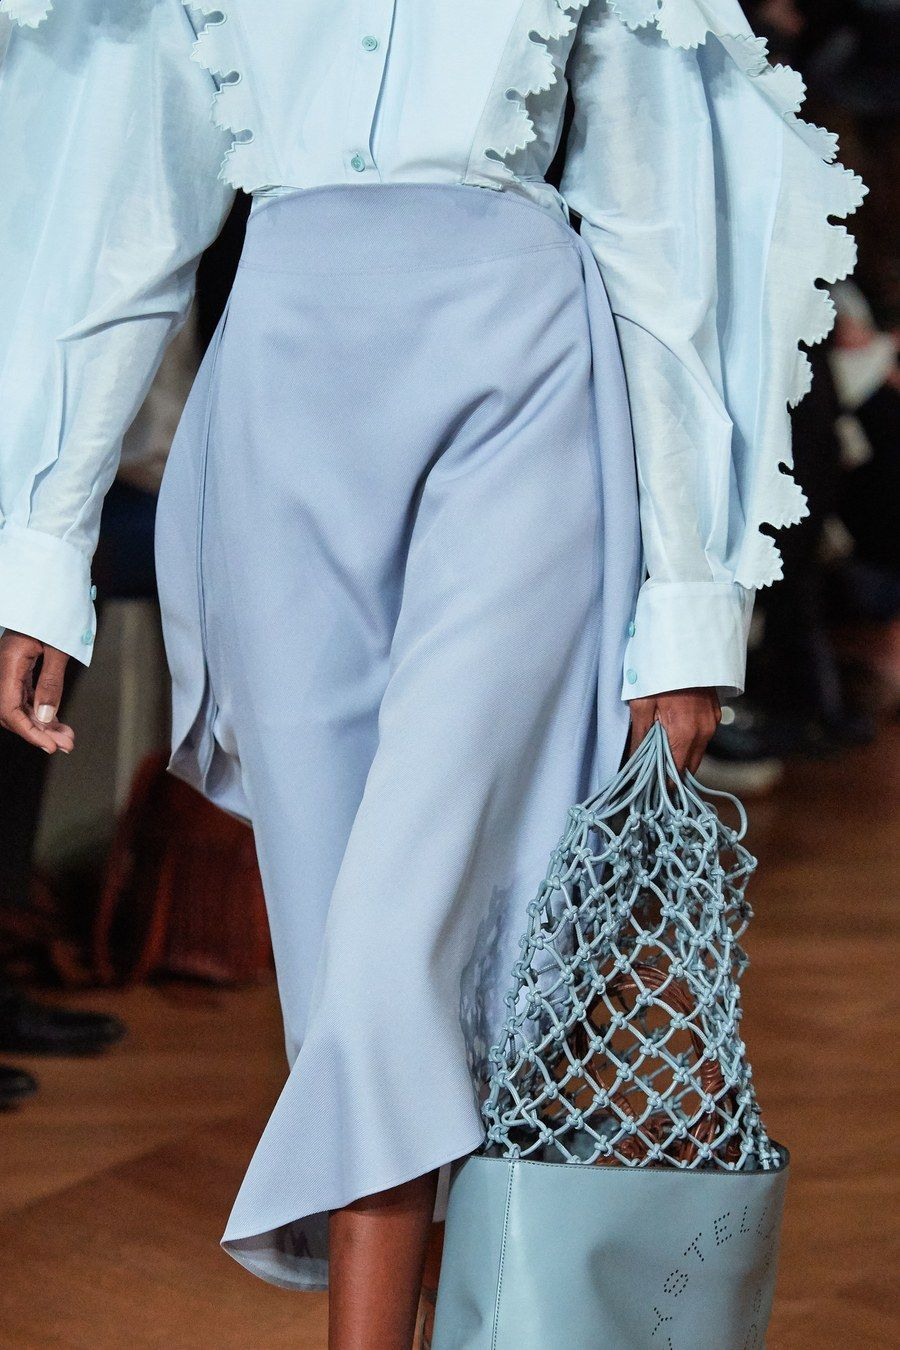 Stella McCartney Spring 2020 Ready-to-Wear Fashion Show -  Stella McCartney Spring 2020 Ready-to-Wear collection, runway looks, beauty, models, and reviews.  - #Fashion #McCartney #ReadytoWear #RunwayFashion2020 #RunwayFashionaesthetic #RunwayFashionalexandermcqueen #RunwayFashioncasual #RunwayFashionchanel #RunwayFashiondior #RunwayFashiondolce&gabbana #RunwayFashionversace #RunwayFashionwomen #Show #Spring #Stella